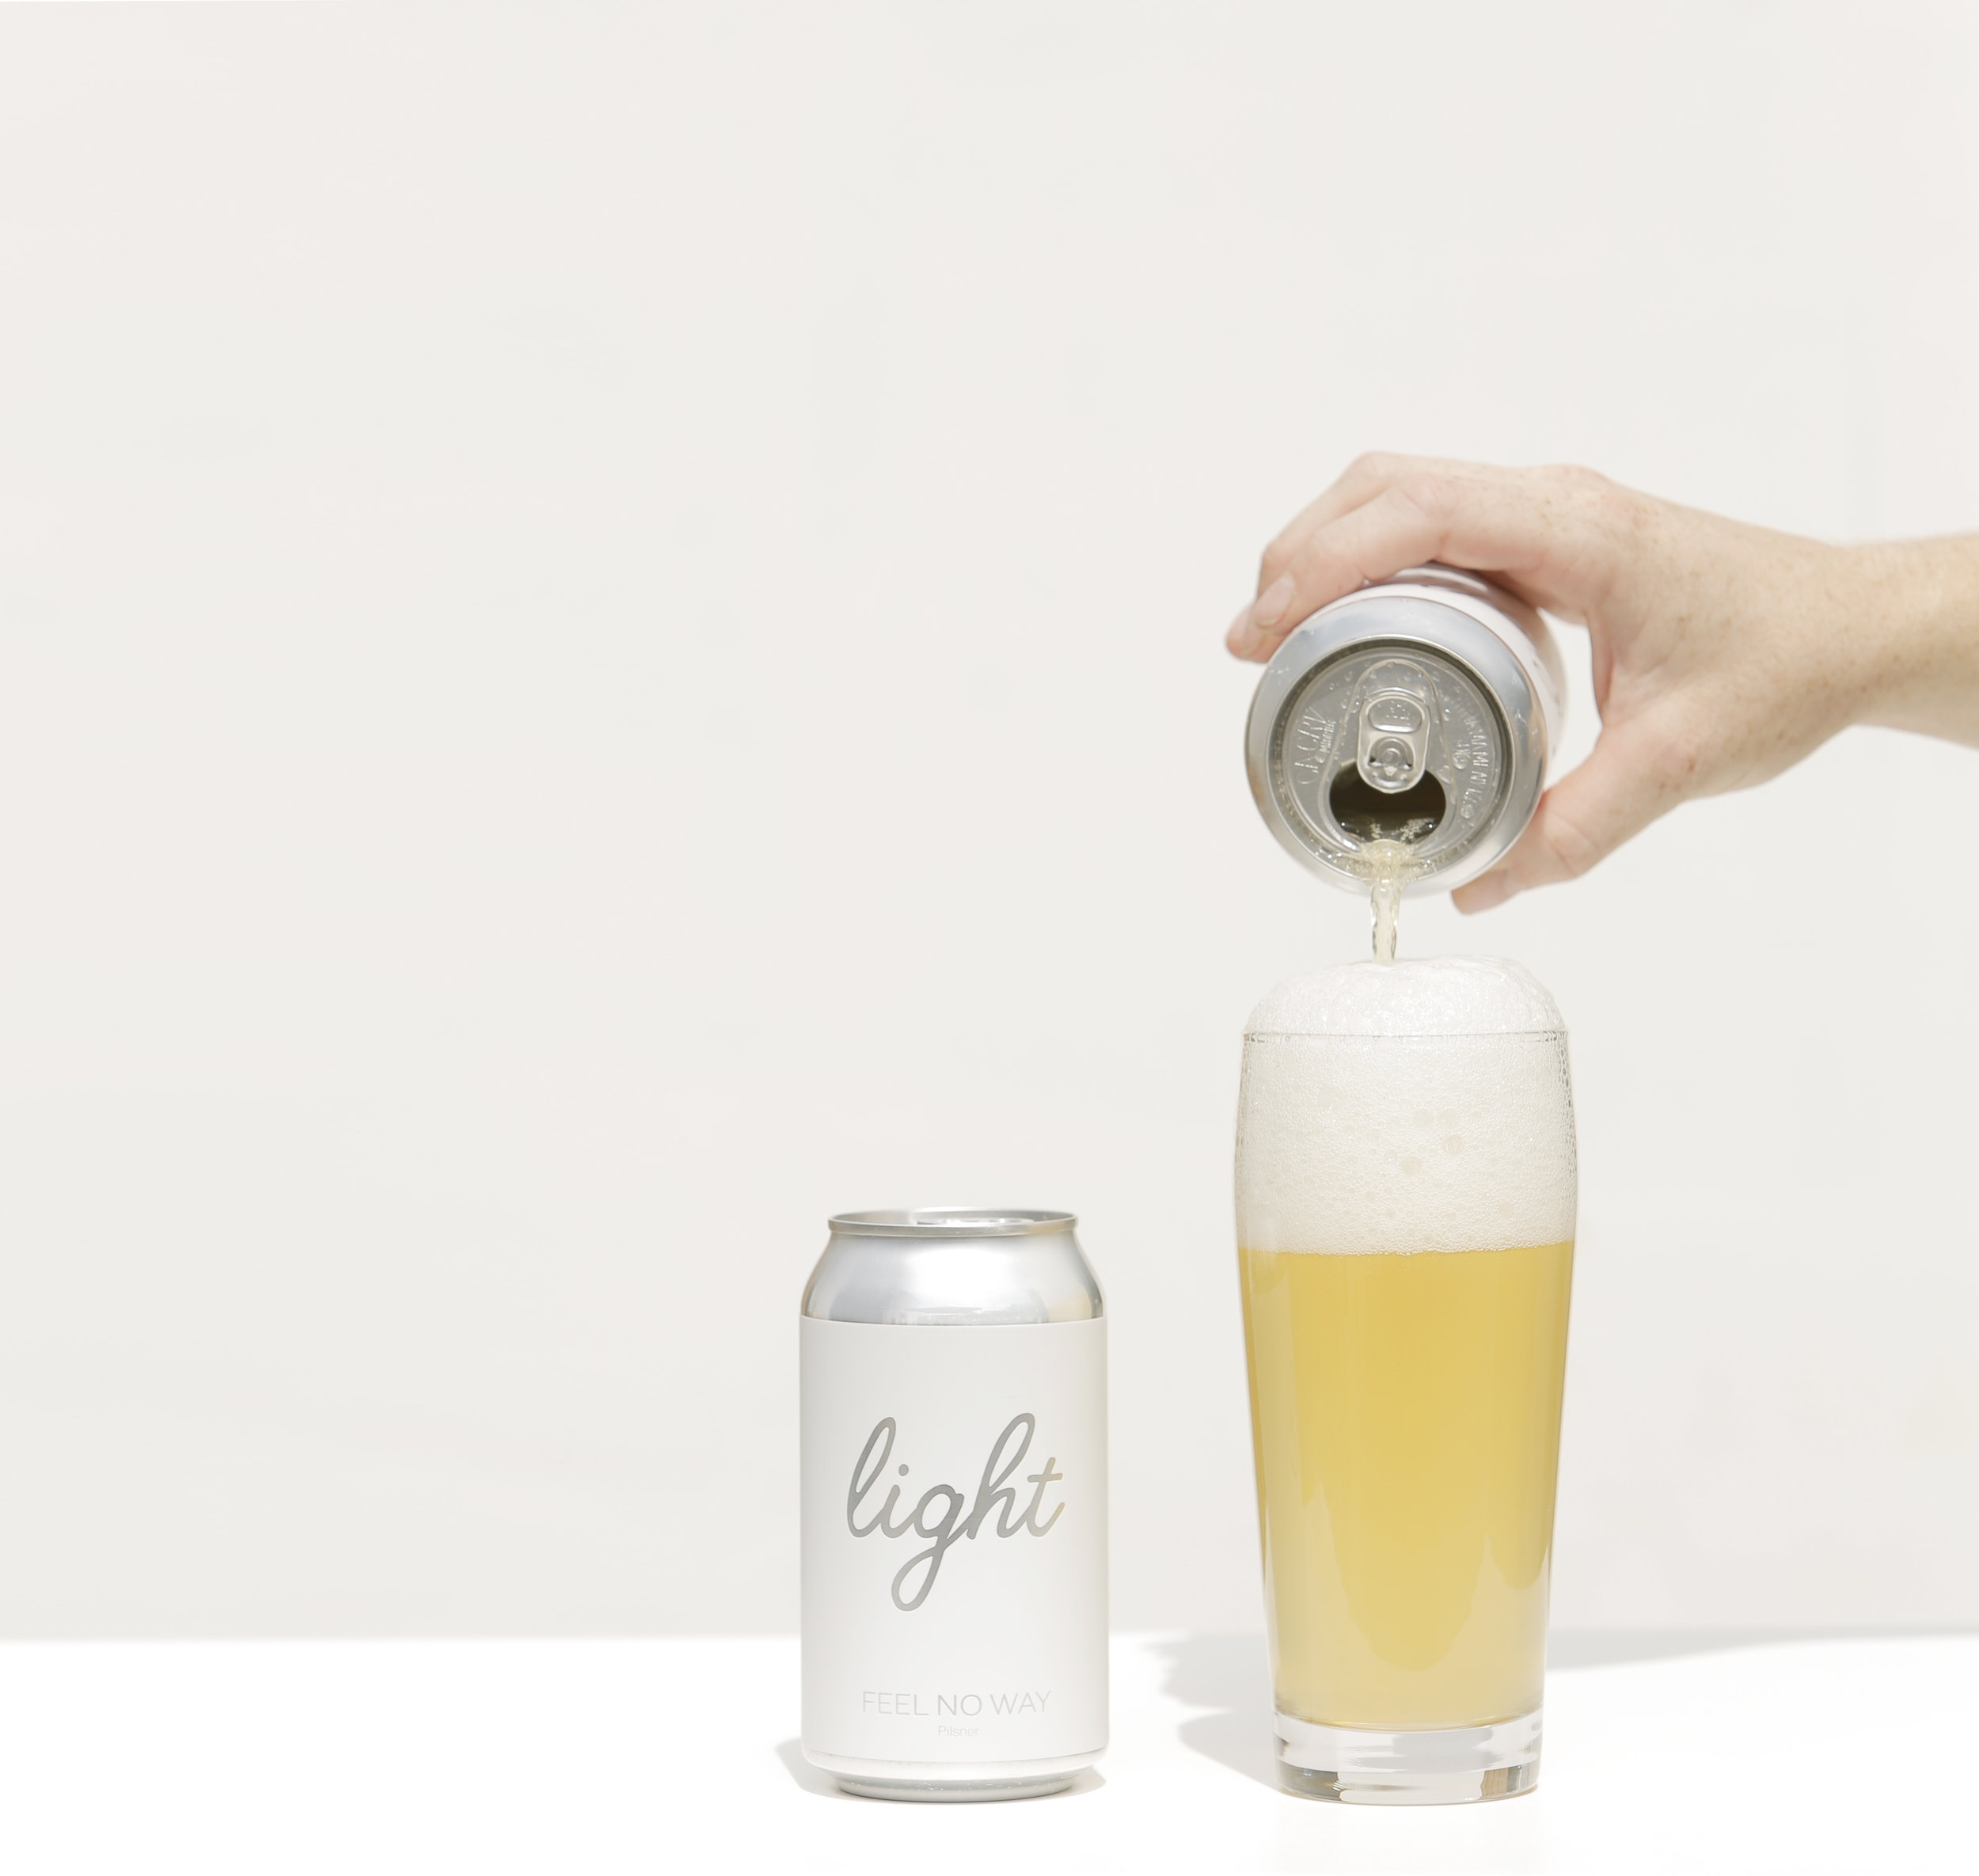 Photo of Feel No Way Light in a can and being poured into a glass